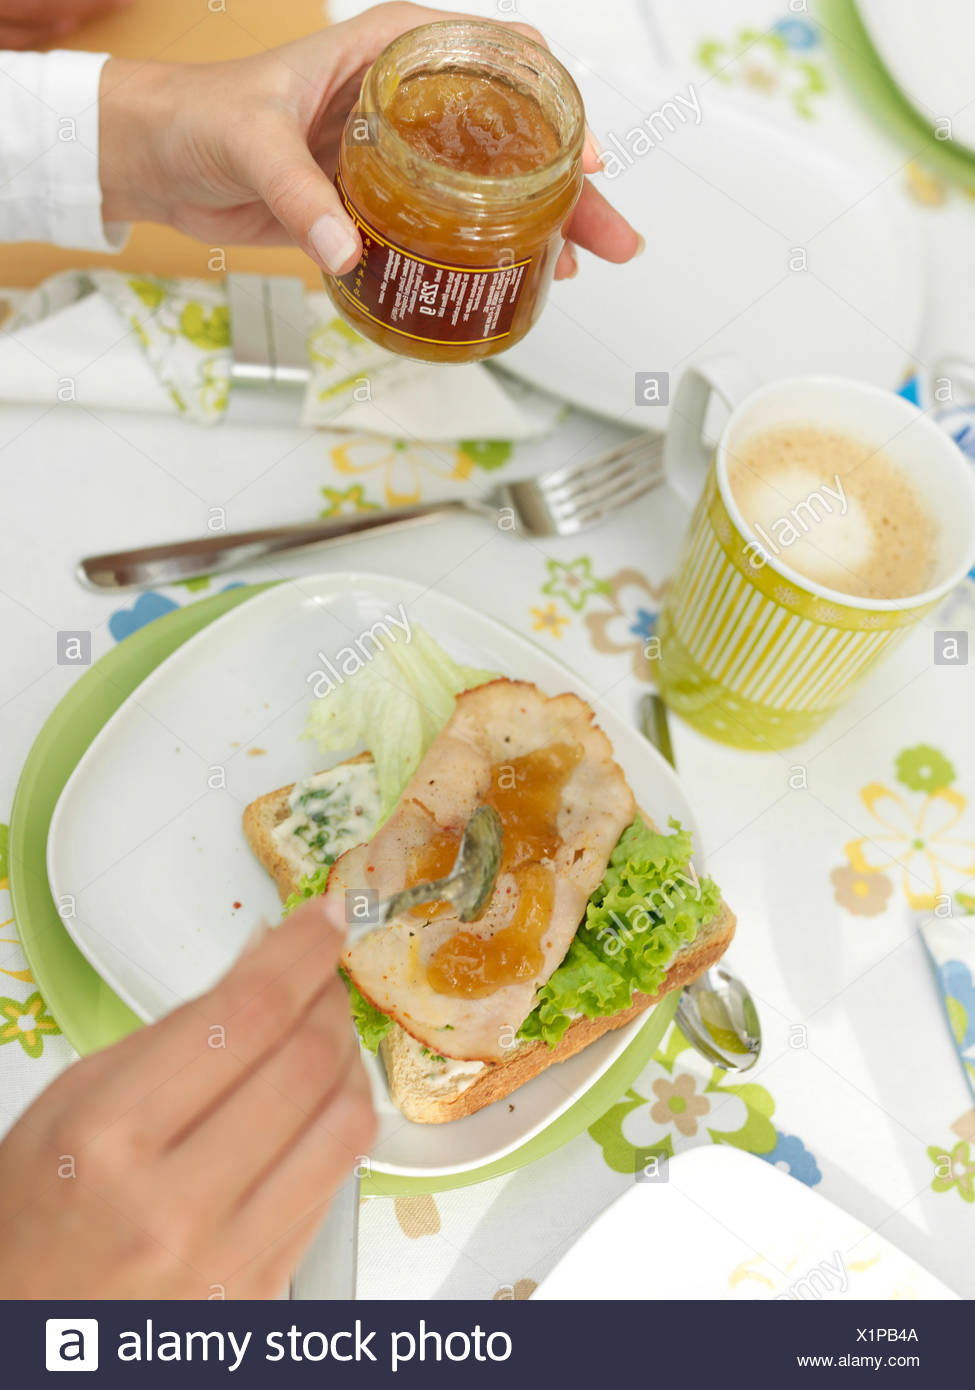 Person's hands spreading jam on prosciutto - Stock Image